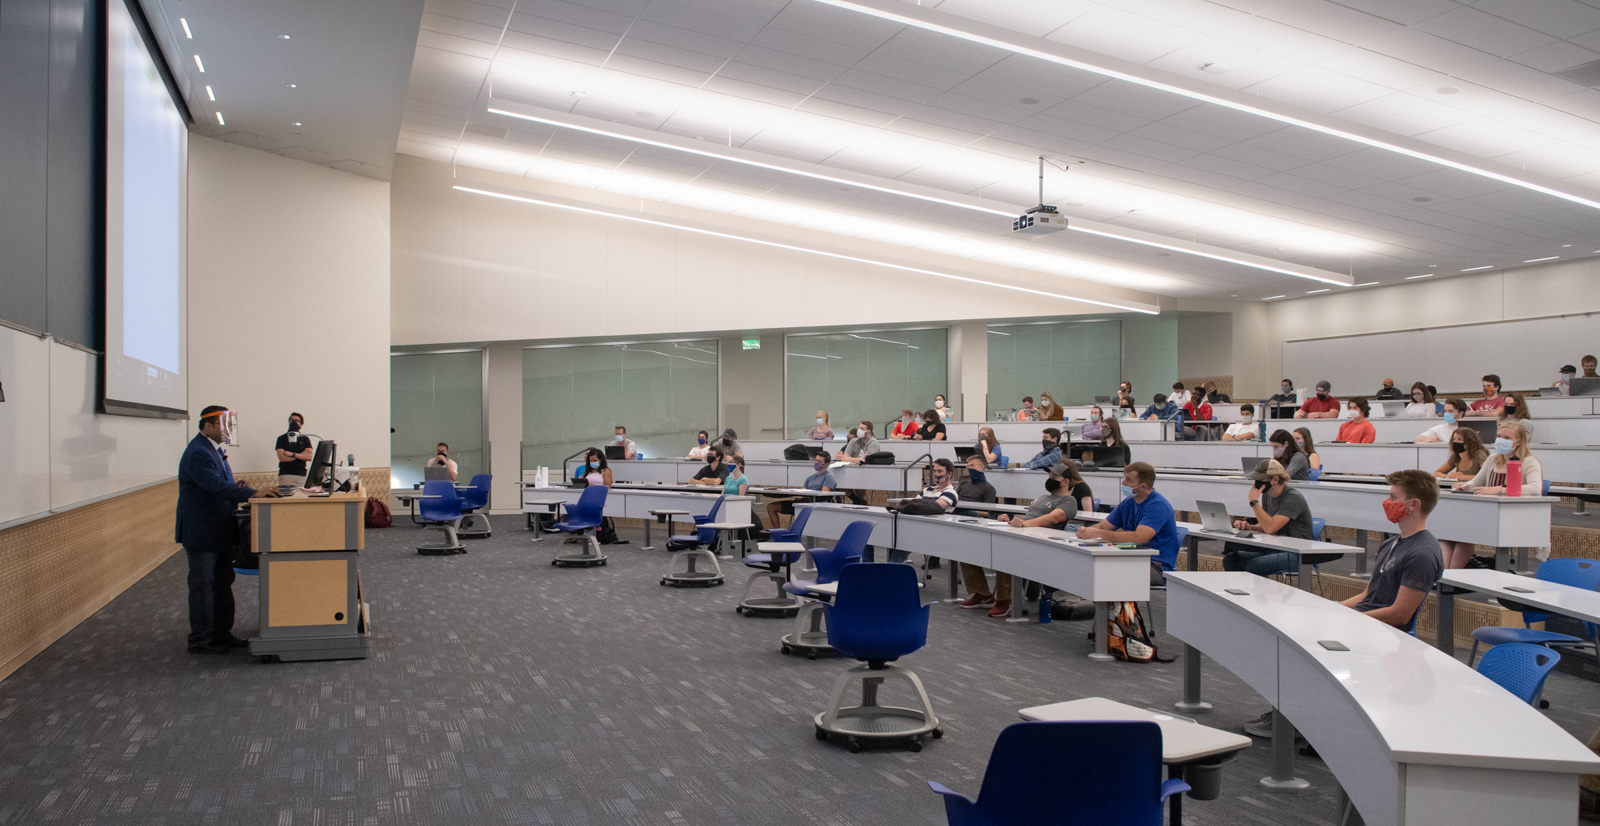 View of a lecture hall inside the building, everyone is wearing masks and professor has a face shield as well